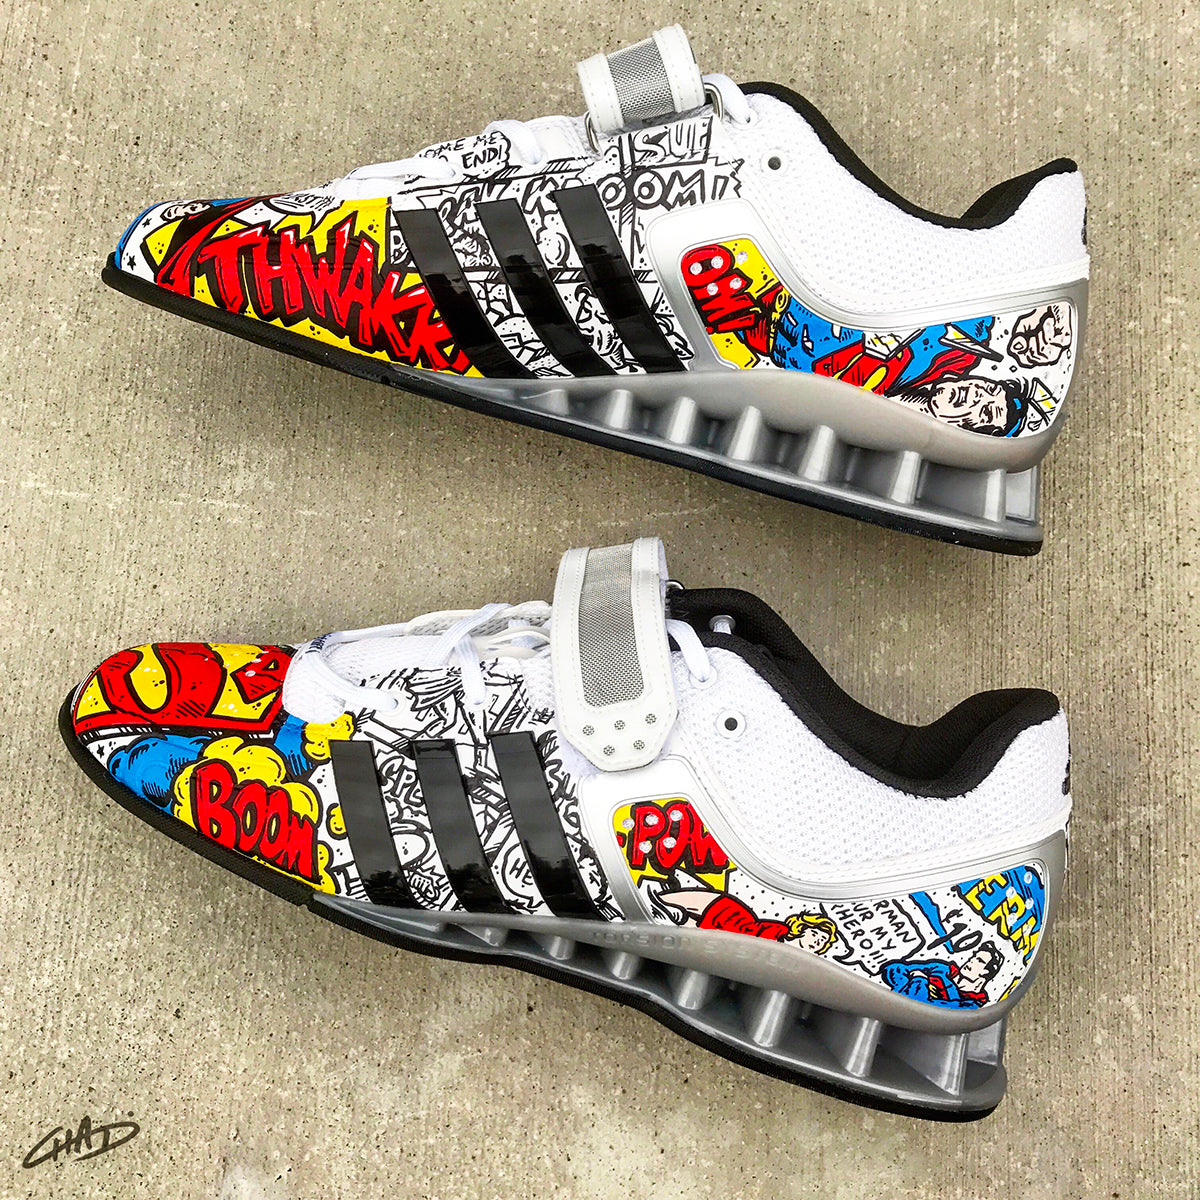 a2cc70f5d042 Superman Custom Hand Painted Adidas Adipowers - Olympic Weightlifting  Crossfit shoes